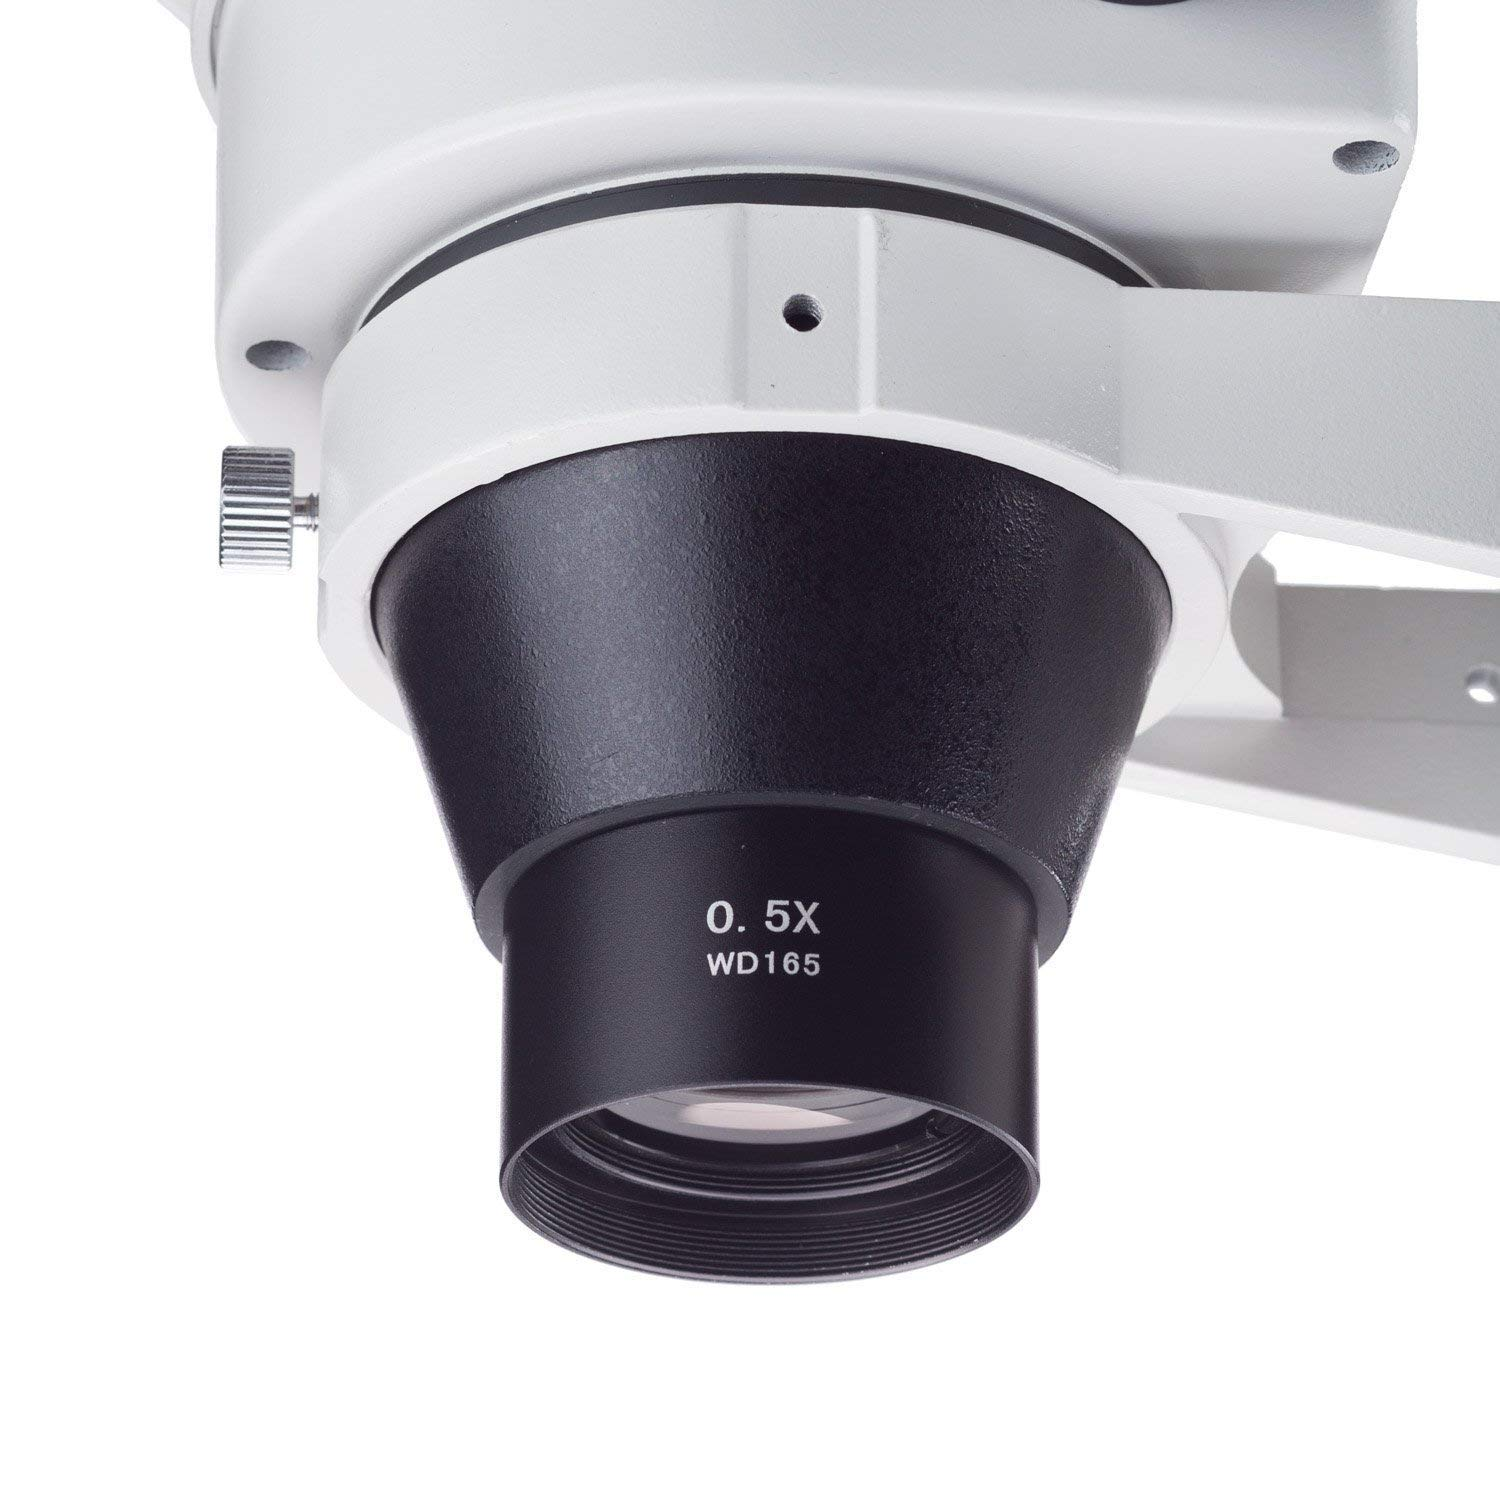 Walter Products AX15 0.5X Barlow Lens for Stereo//Industrial Microscopes 48mm Suitable for WP-1F WP-2F WP-3F WP-5F WP-7F WP-8F WP-9F Series